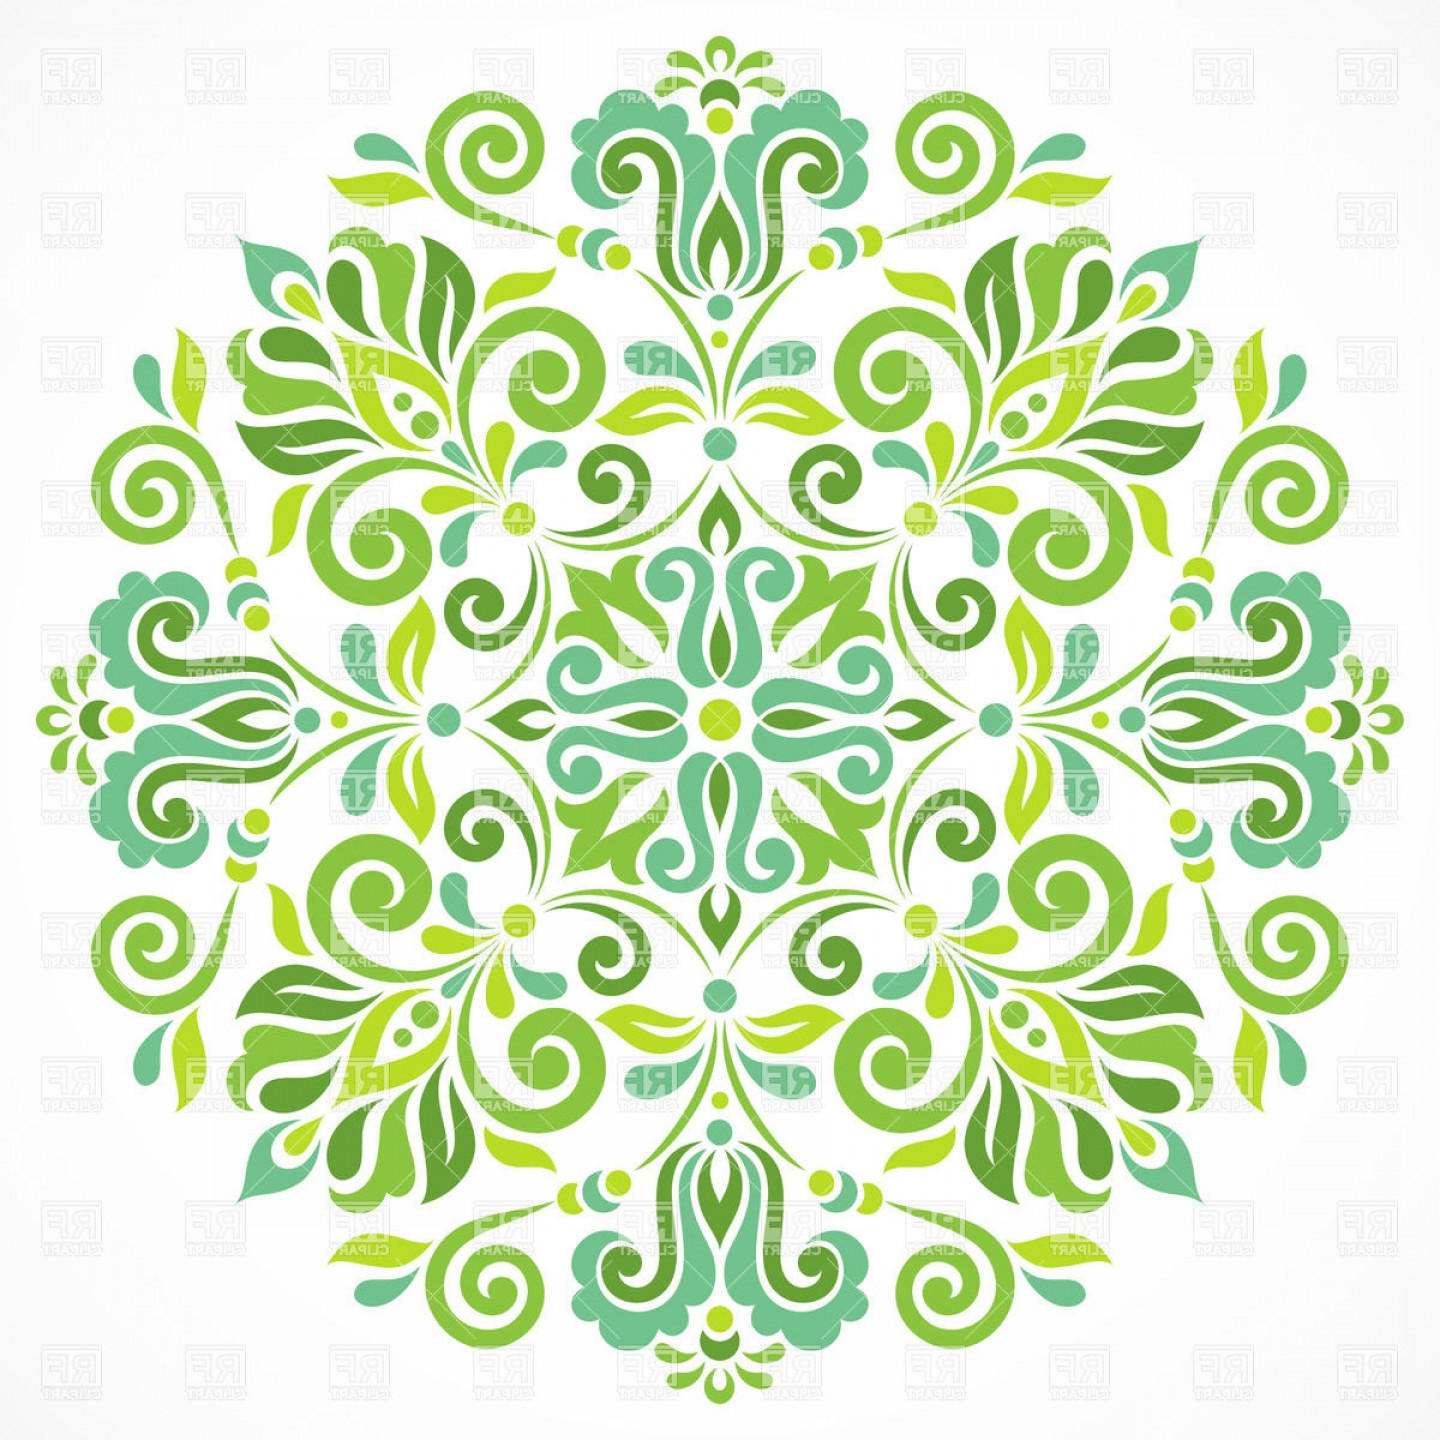 Free EPS Vector Art: Green Round Graphic Ornament Vector Clipart